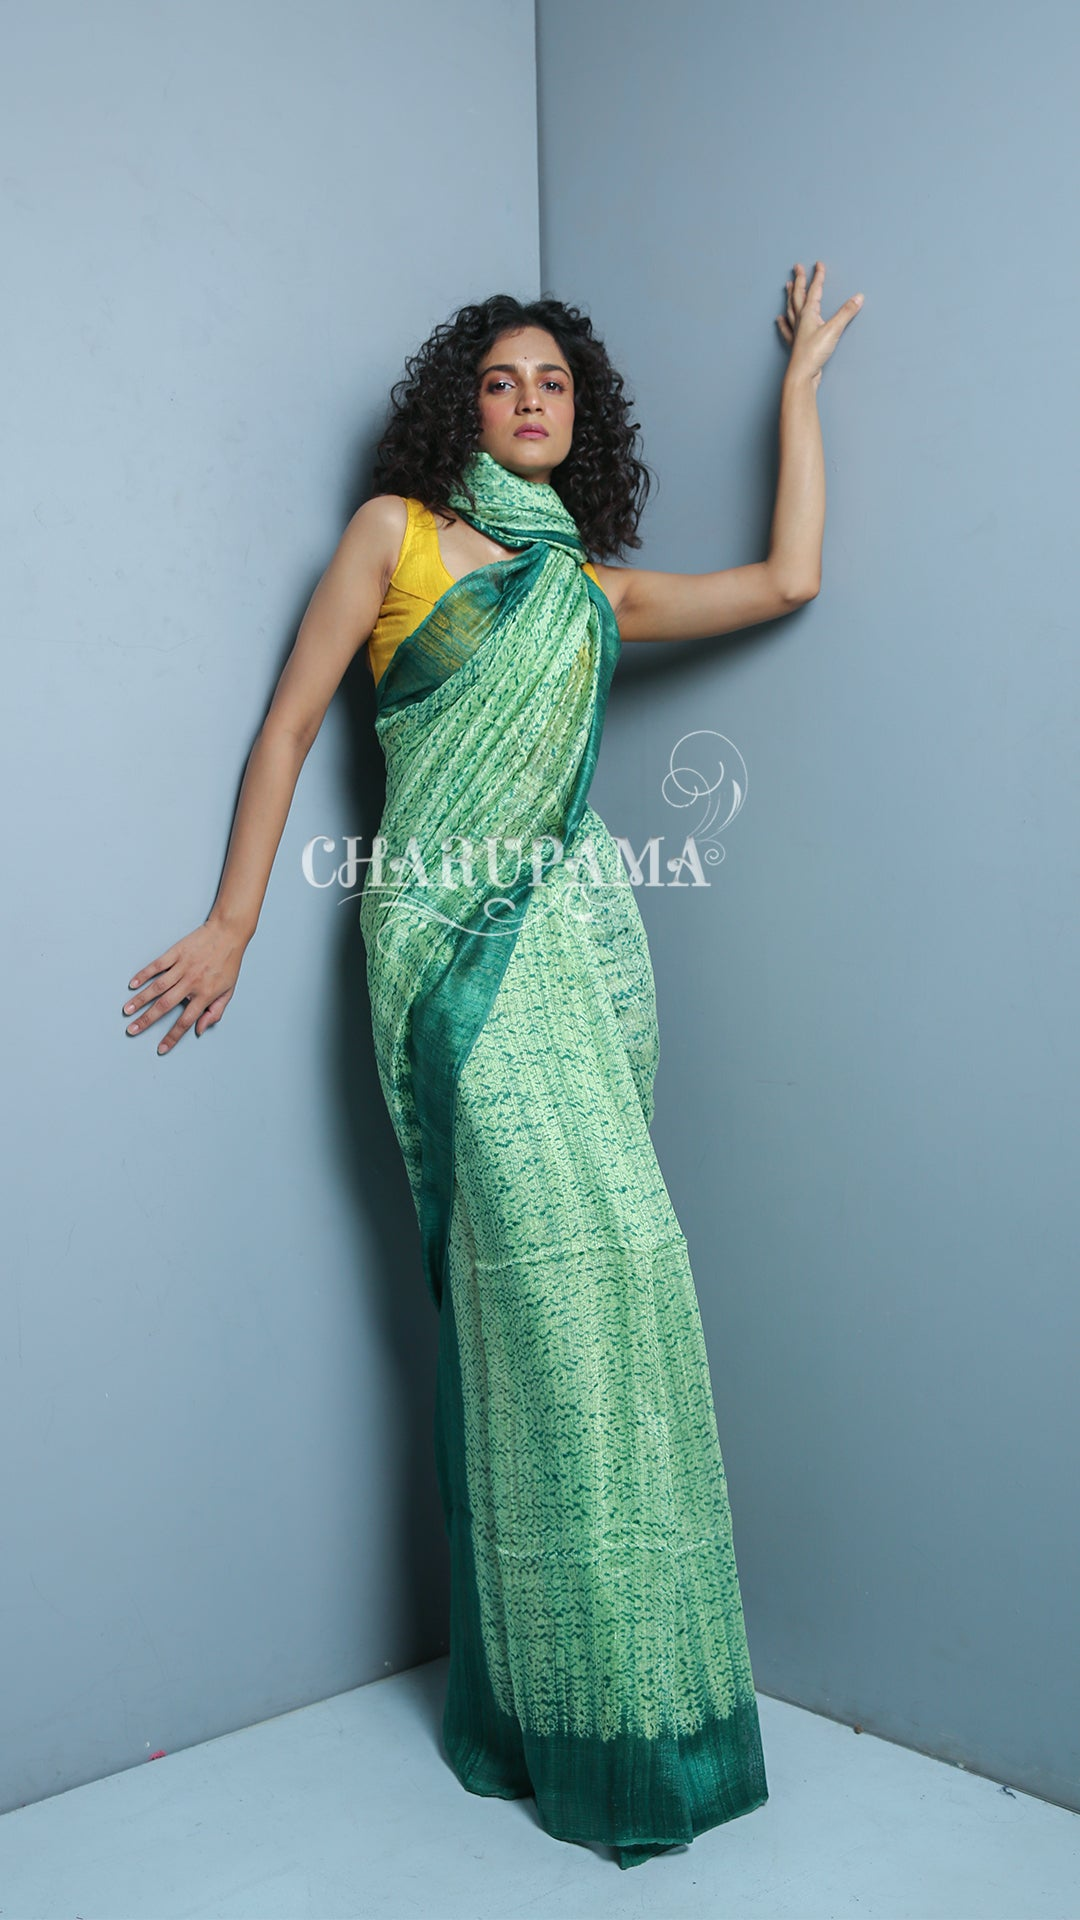 Look Stunning In This Unique But Simple Green Matka Saree. This Matka Saree Can Make Anyone Look Elegant - Charupama